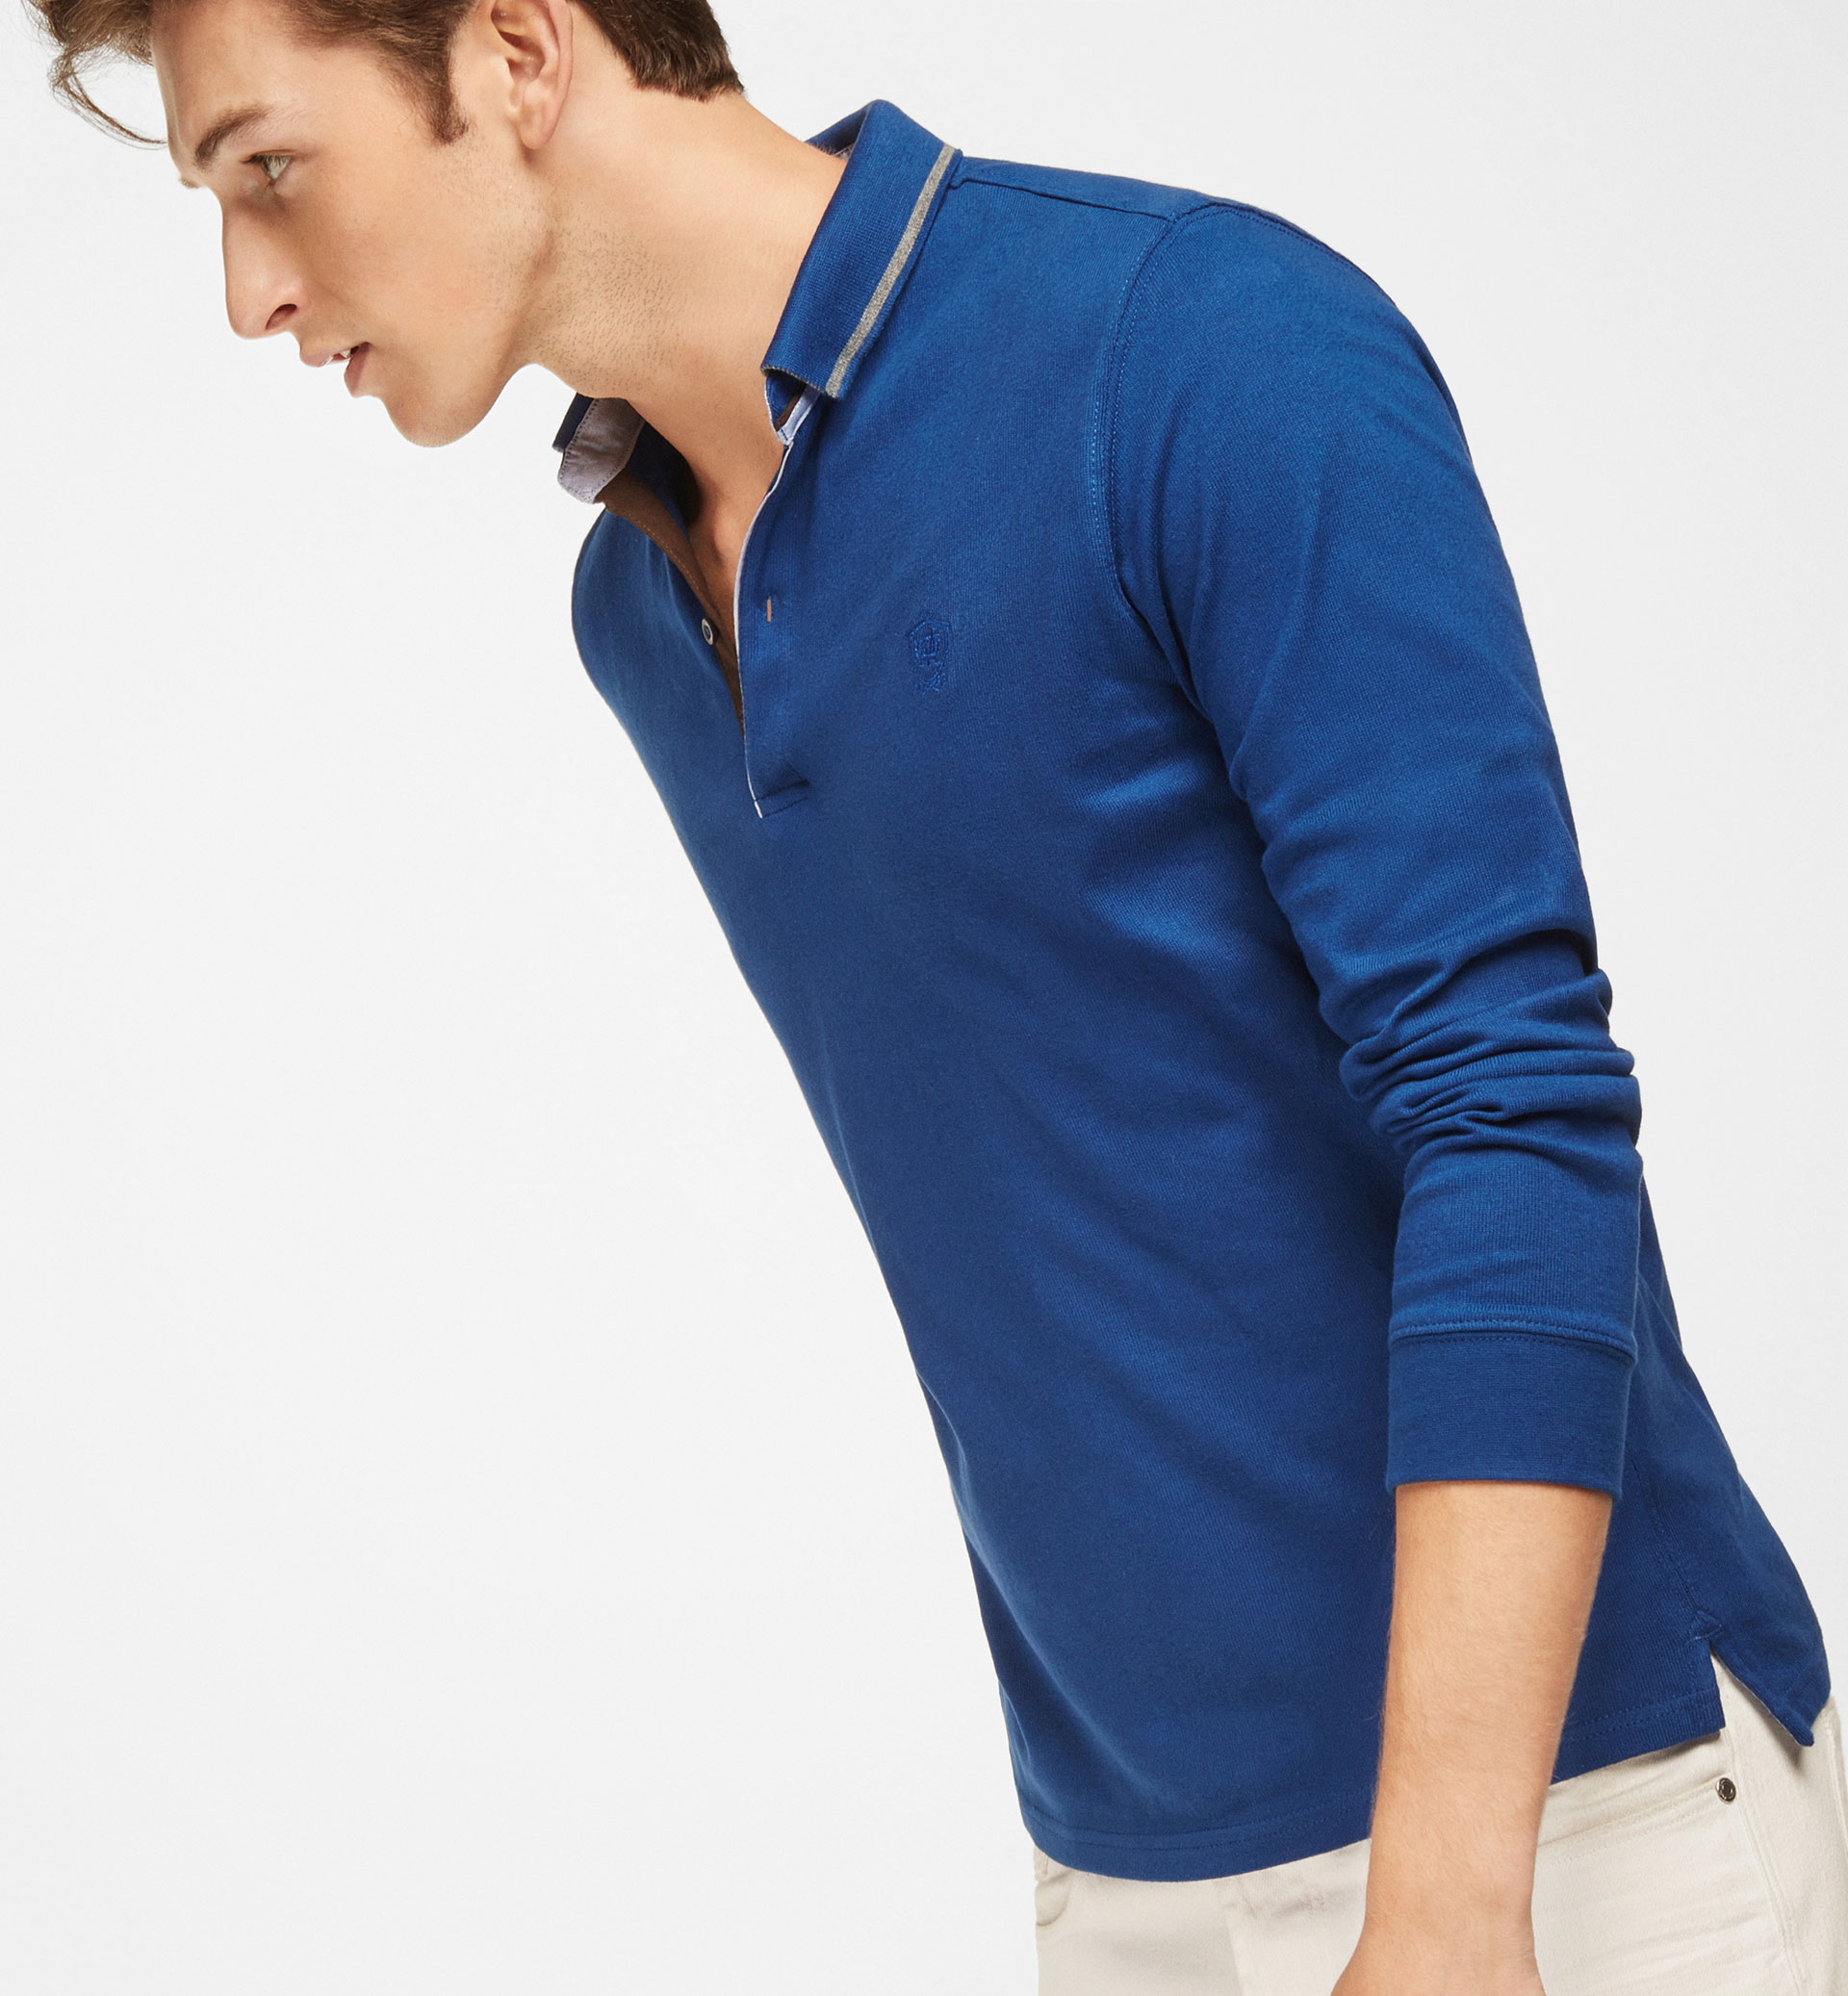 PLAIN POLO SHIRT WITH NECKLINE DETAIL